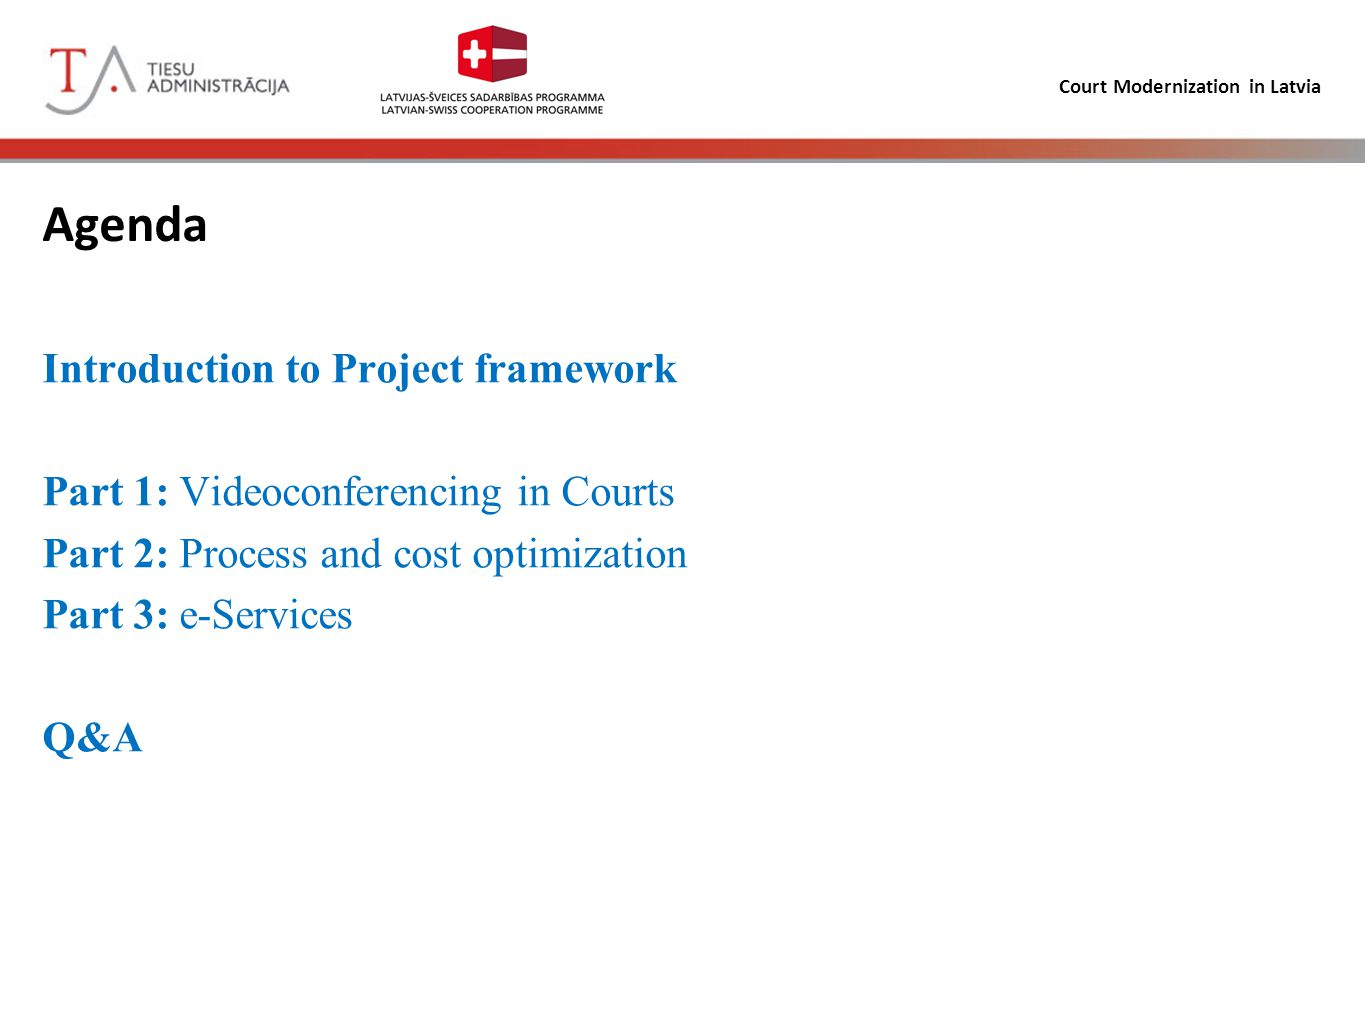 Court Modernization in Latvia Agenda Introduction to Project framework Part 1: Videoconferencing in Courts Part 2: Process and cost optimization Part